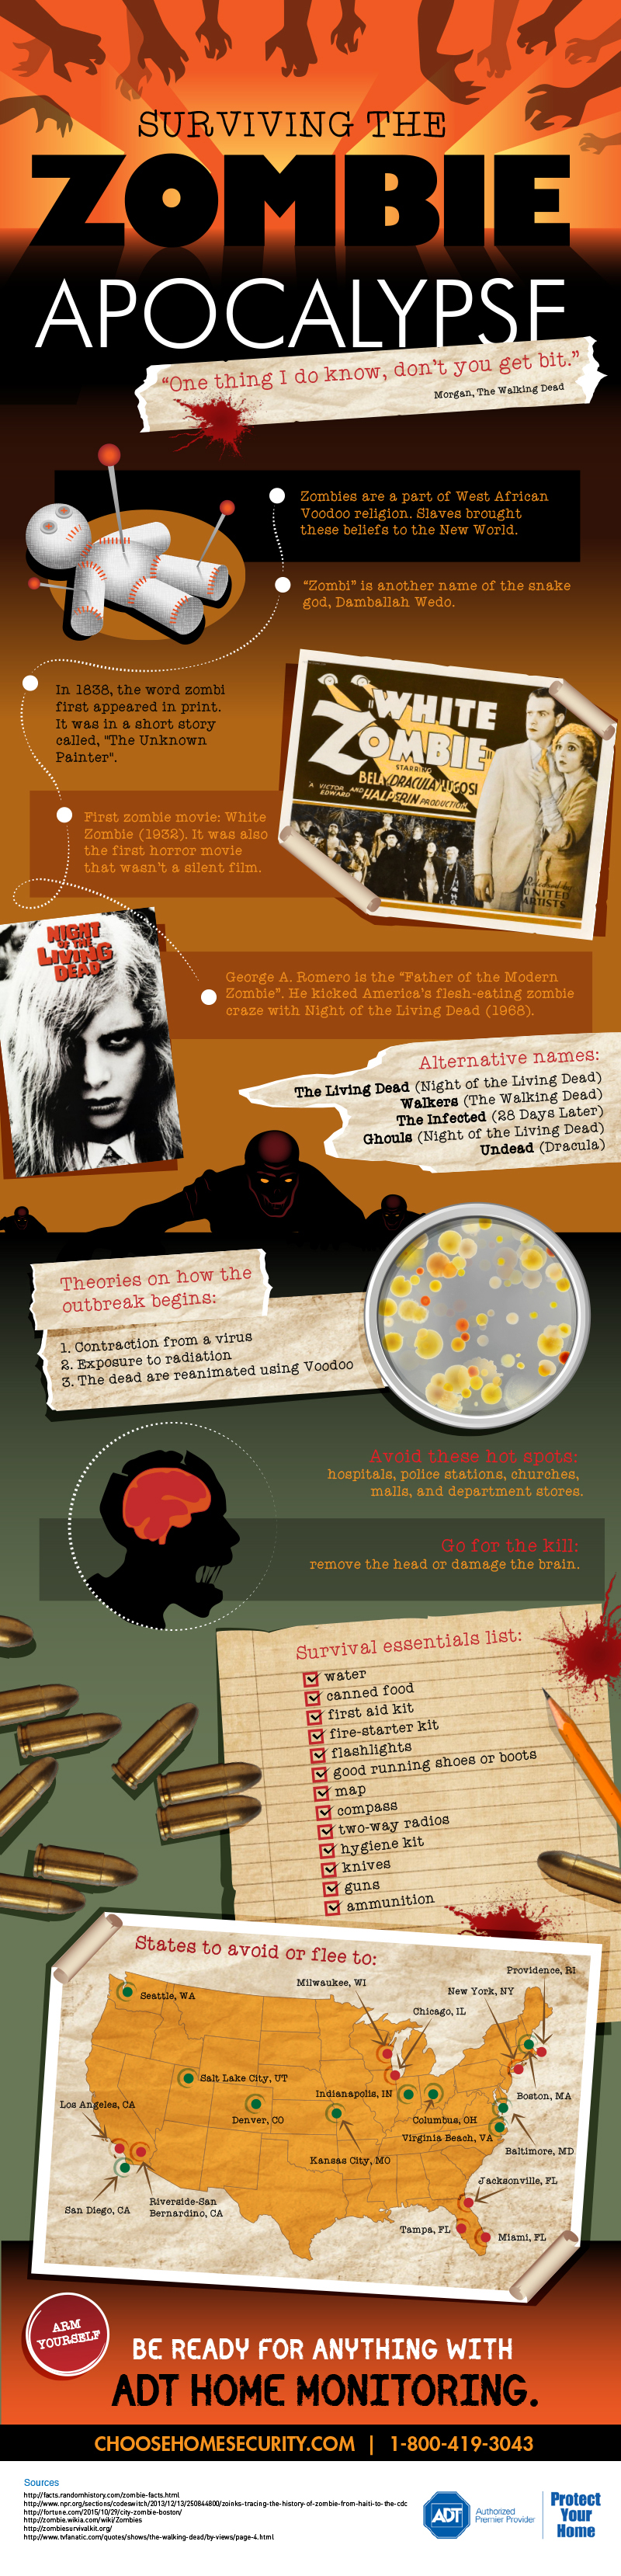 Surviving the Zombie Apocalypse by Choose Home Security